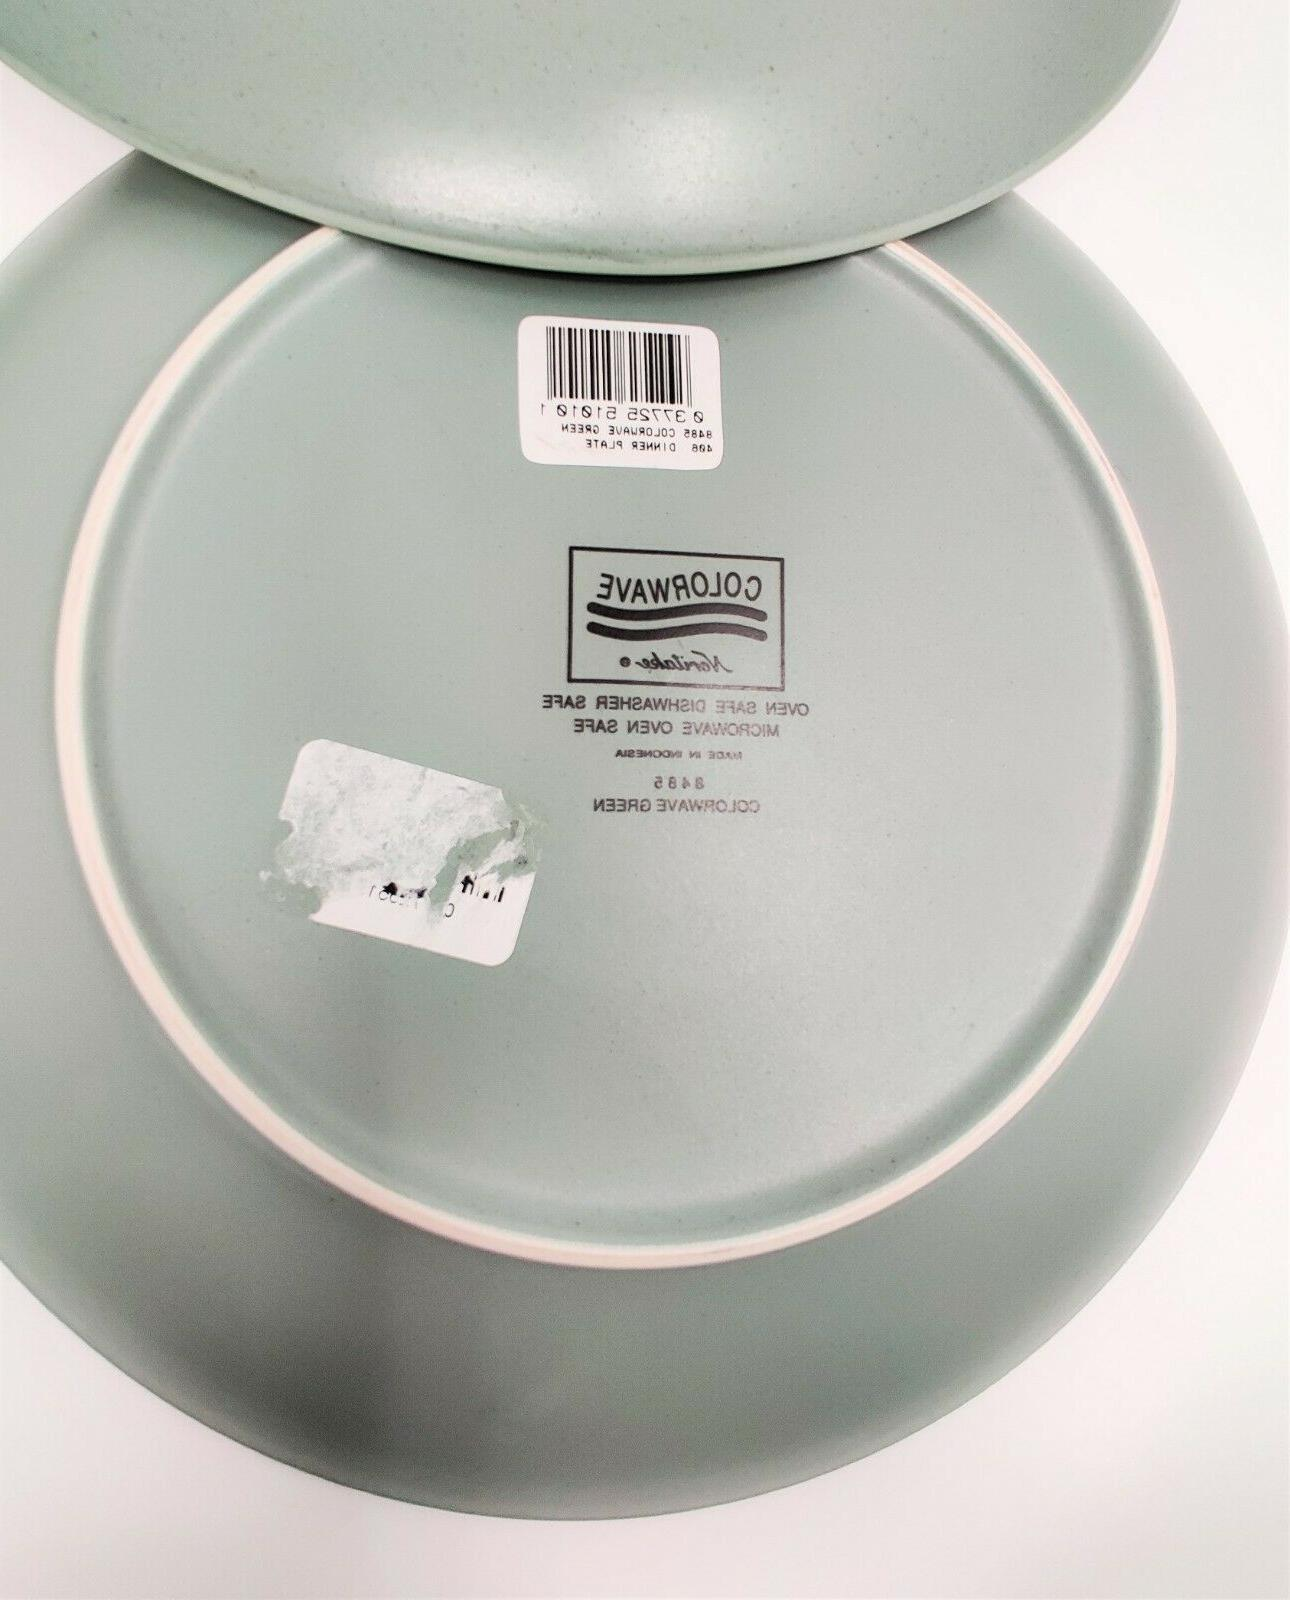 4 GREEN Dinner Plates, Coupe, 10 NEW